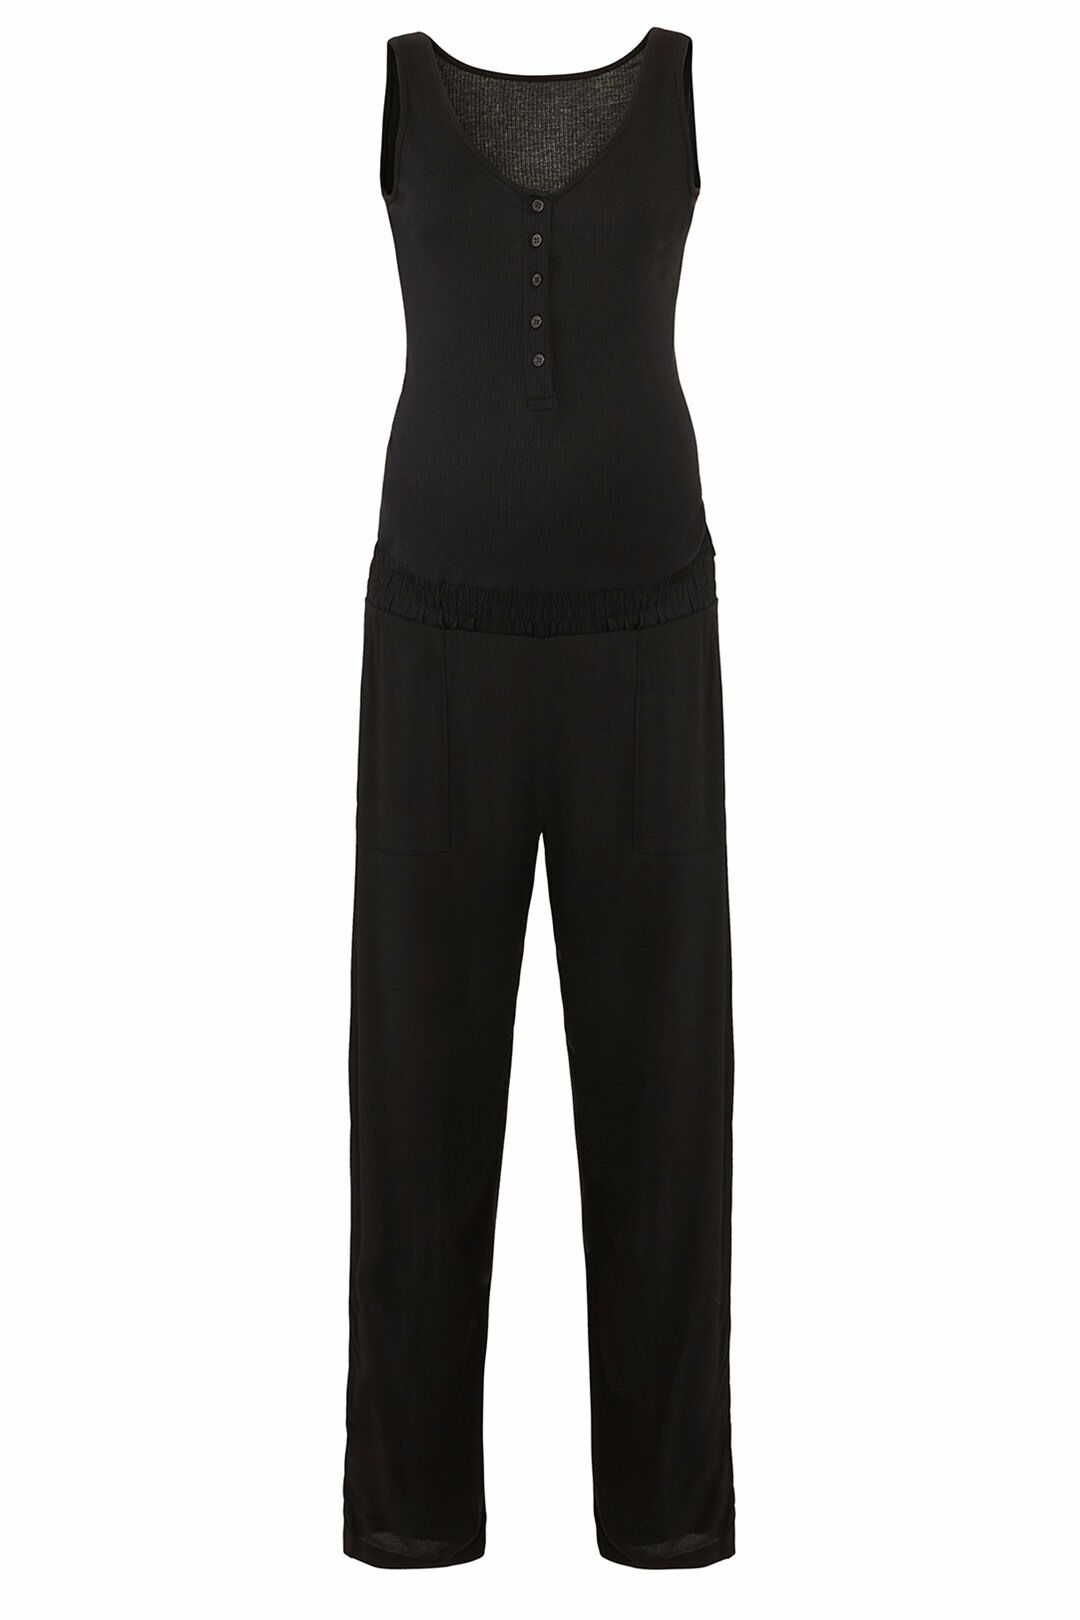 Henly Maternity Jumpsuit